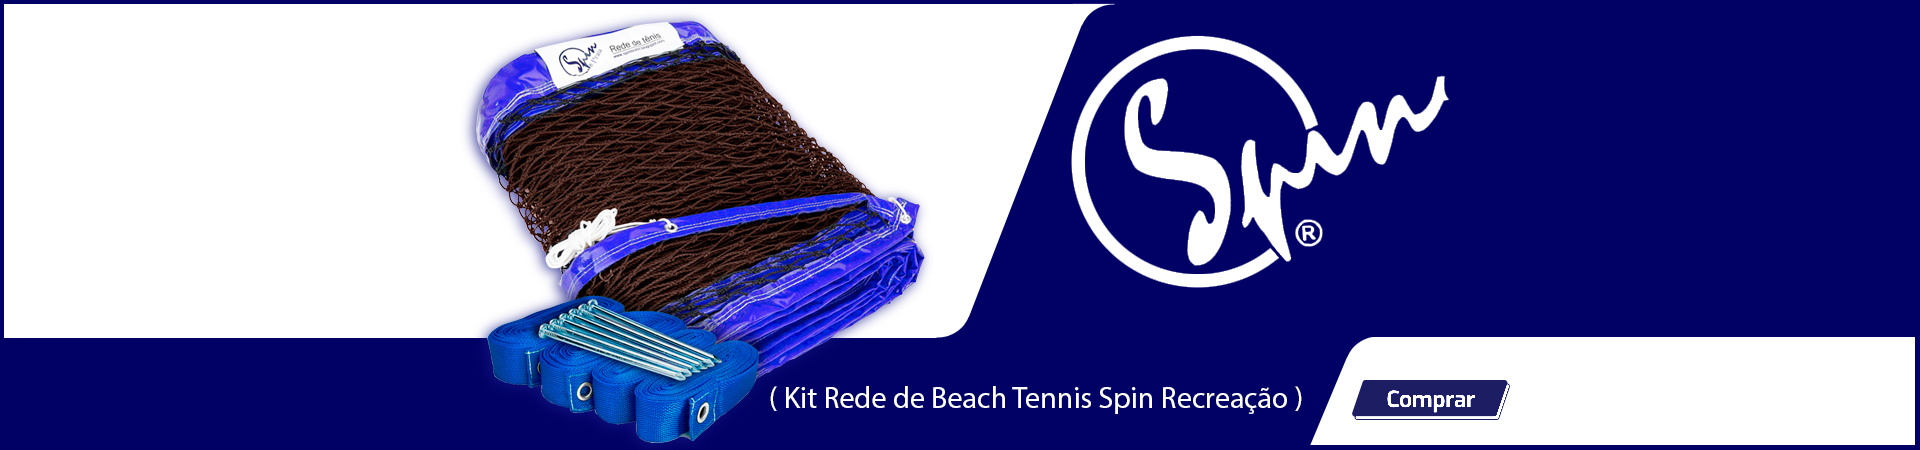 Kit Rede de Beach Tennis